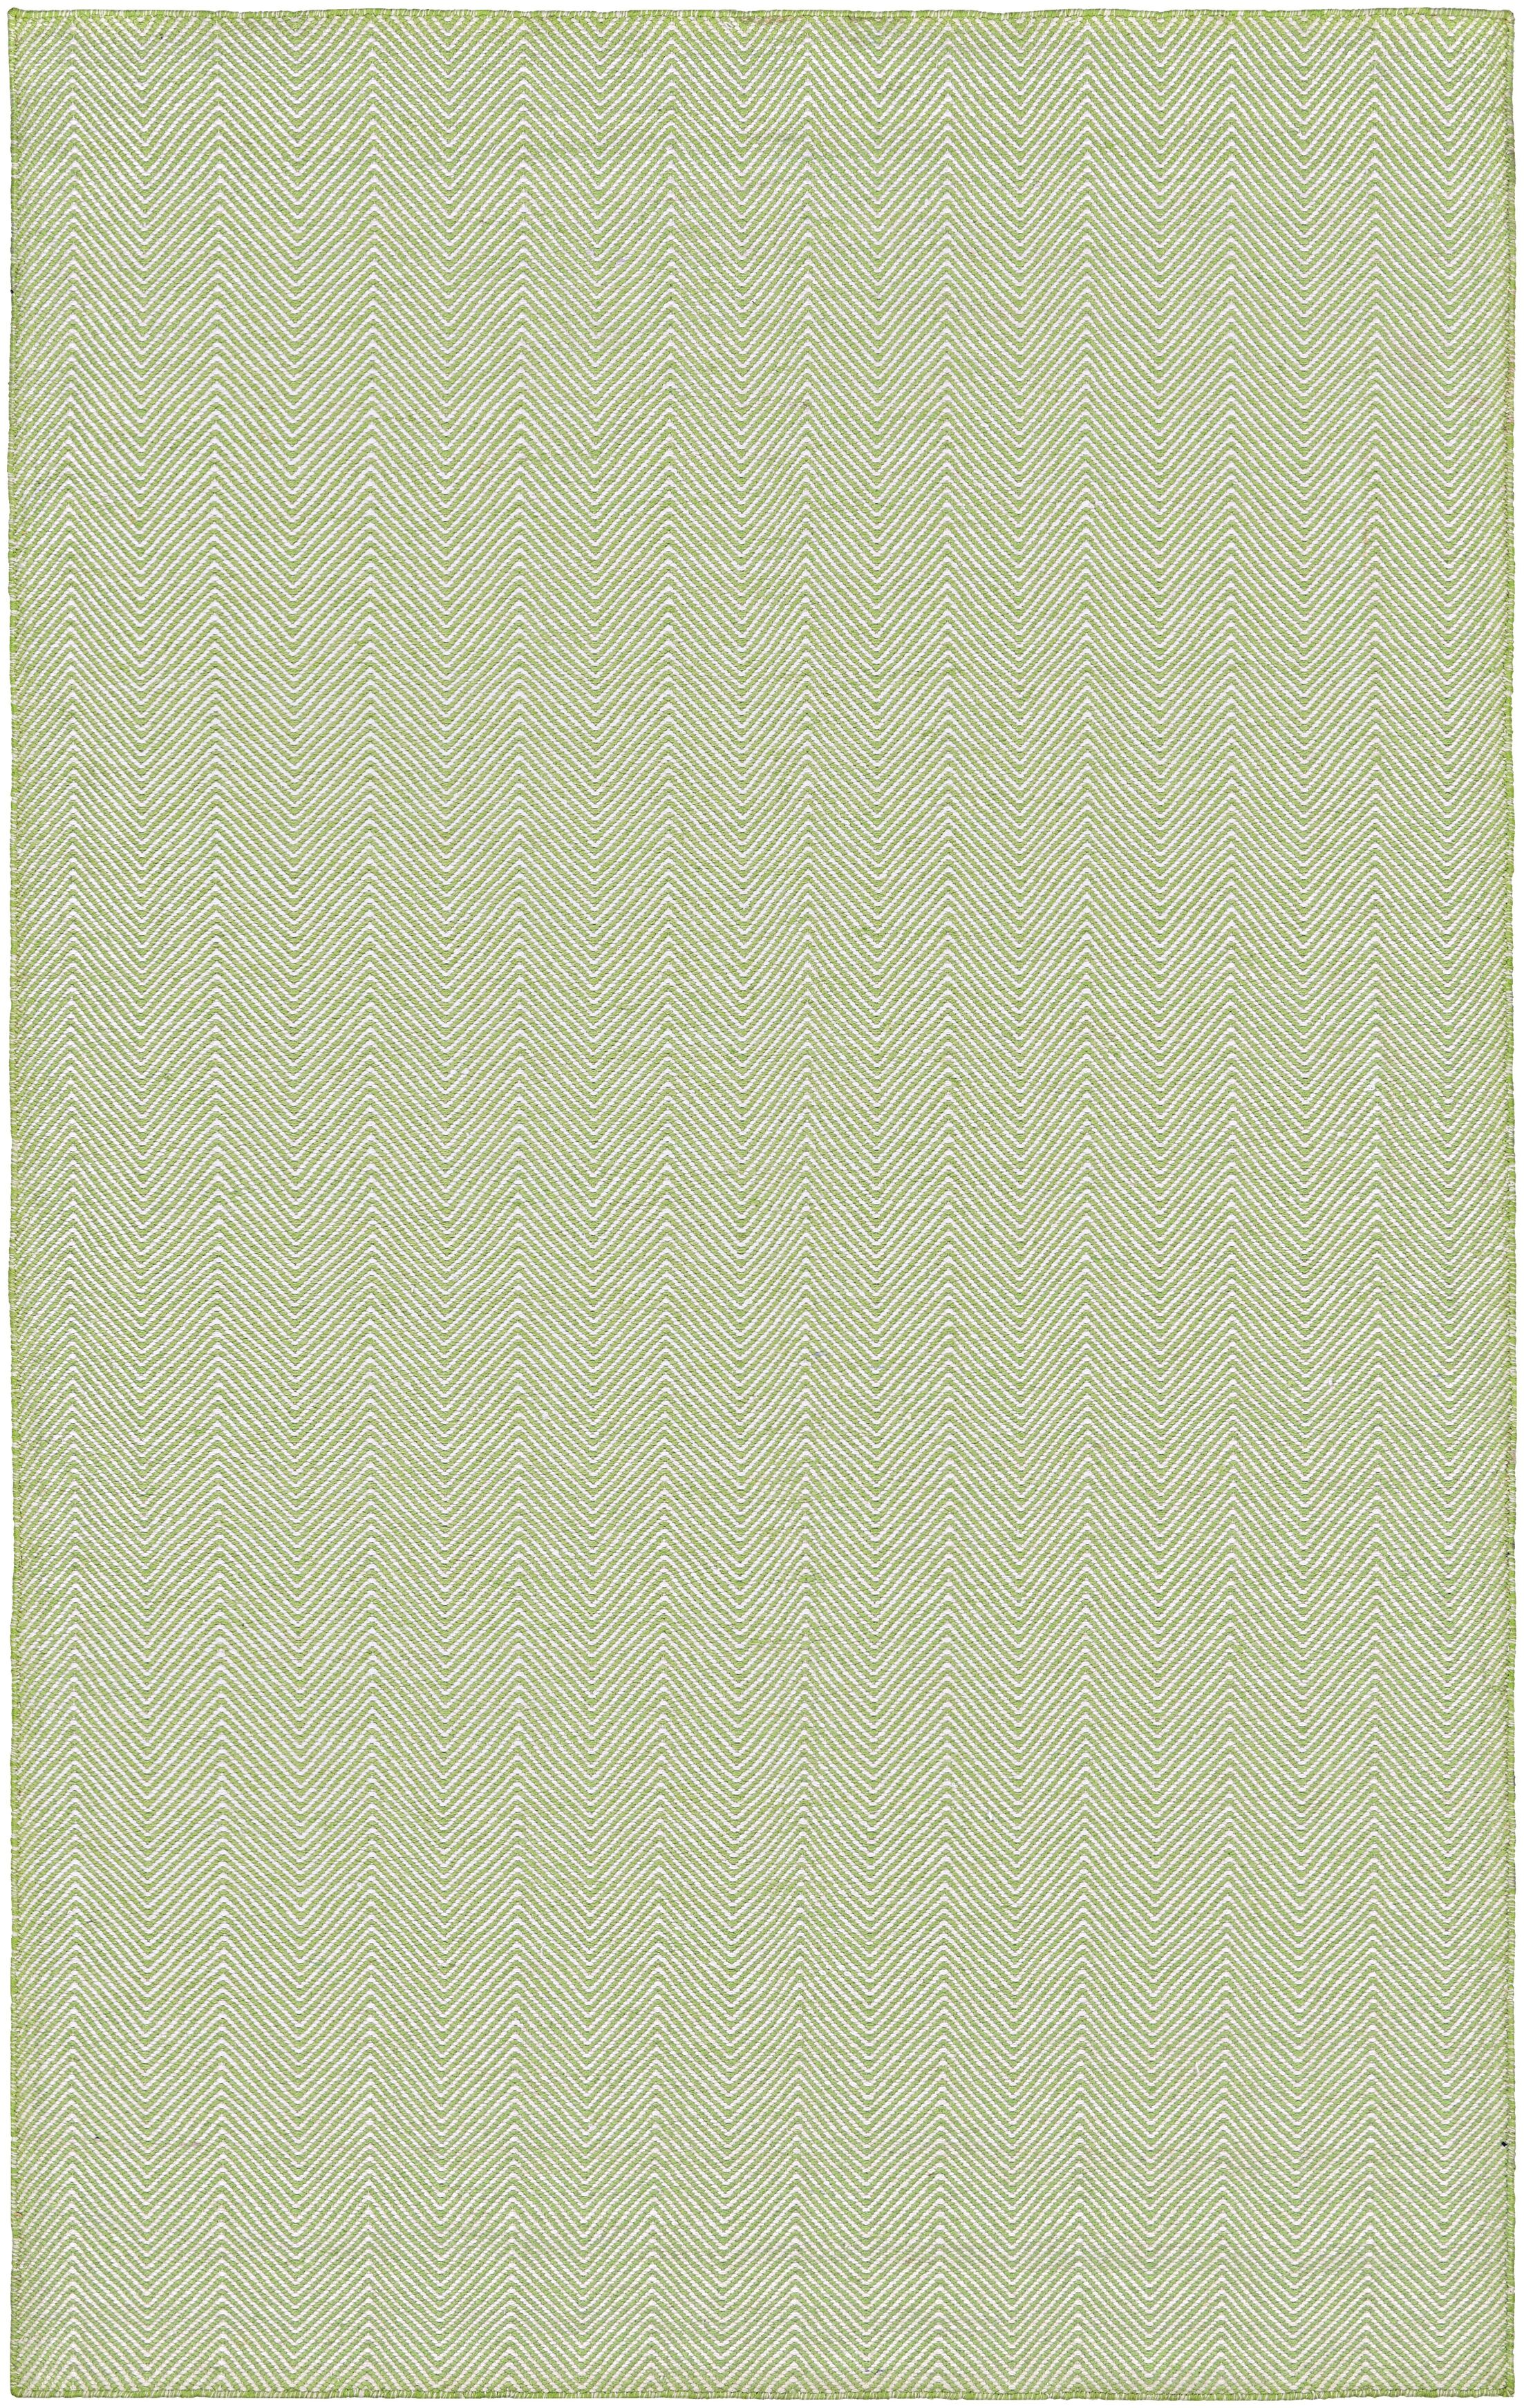 Alonso Hand-Woven Green Indoor/Outdoor Chevron Area Rug Rug Size: Rectangle 5' x 8'